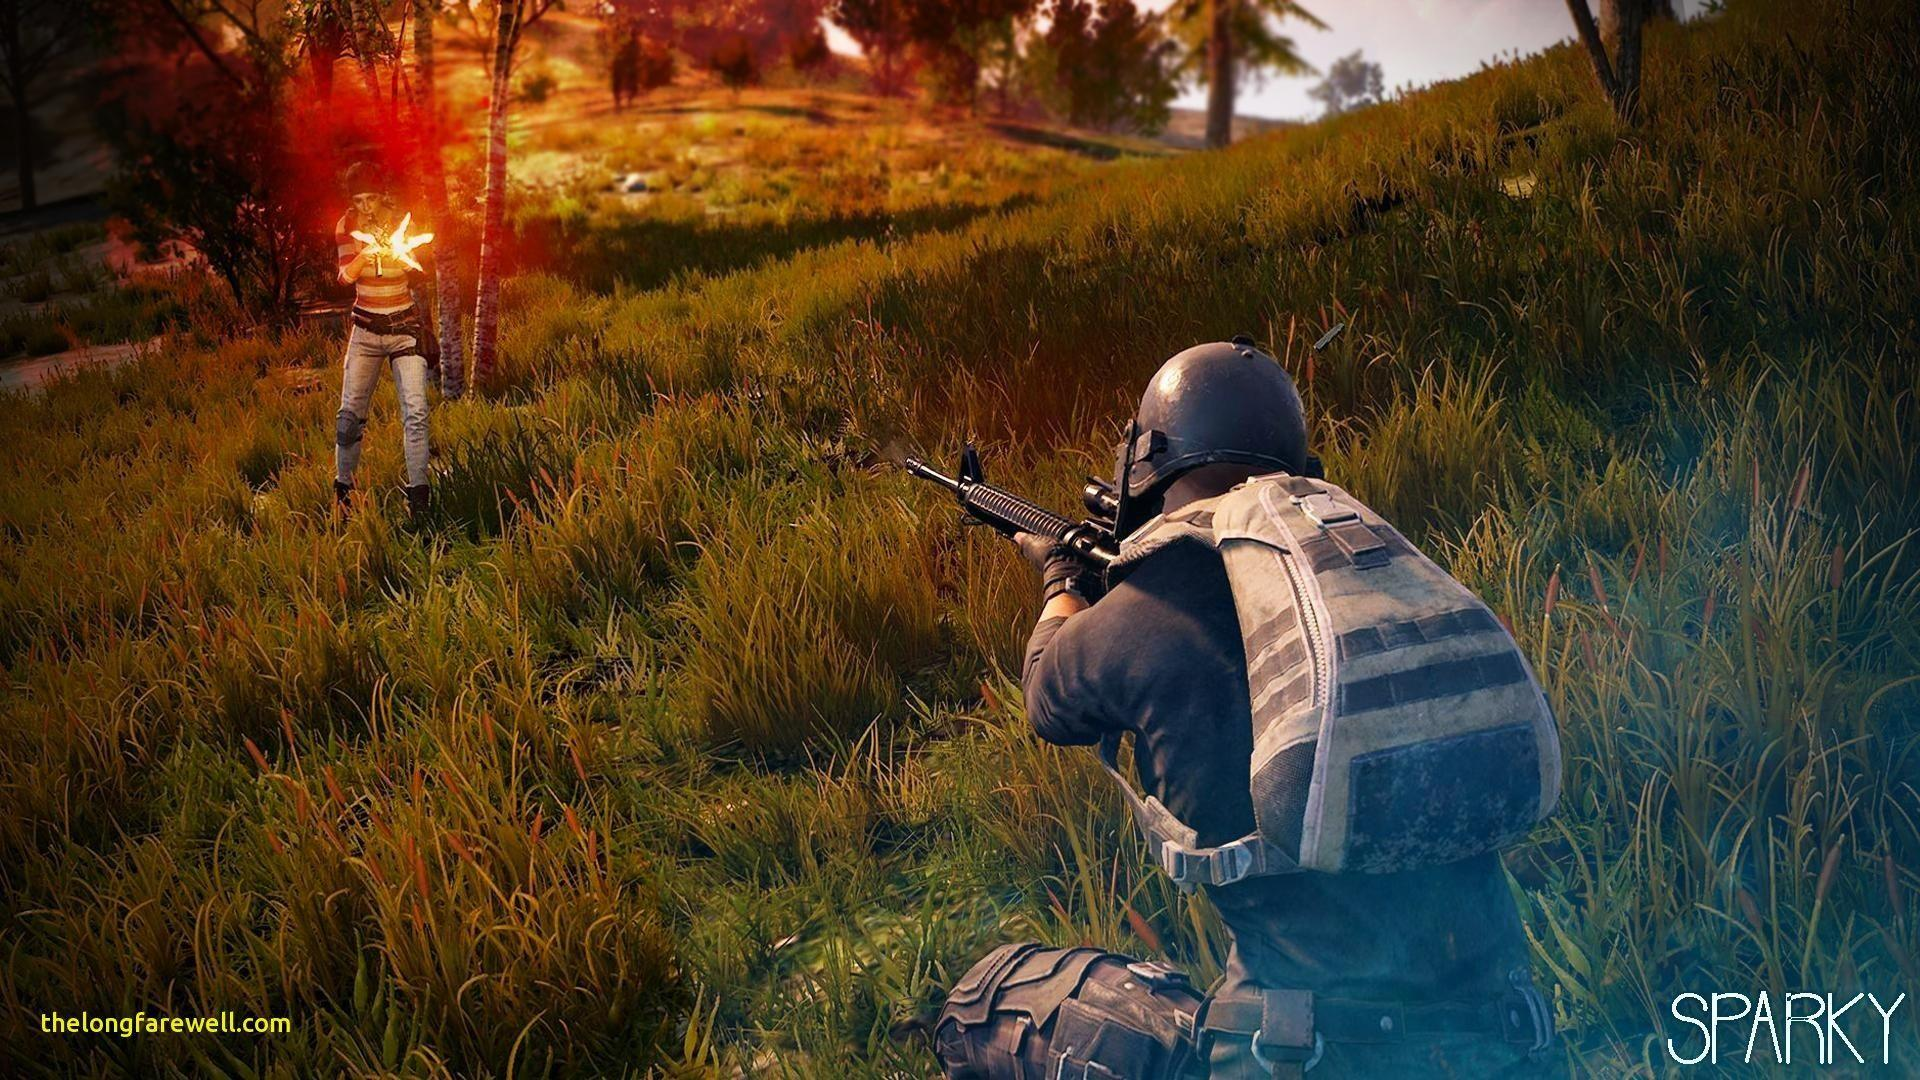 1920x1080 Pubg Artwork 4k Laptop Full Hd 1080p Hd 4k: PUBG 4K Wallpapers